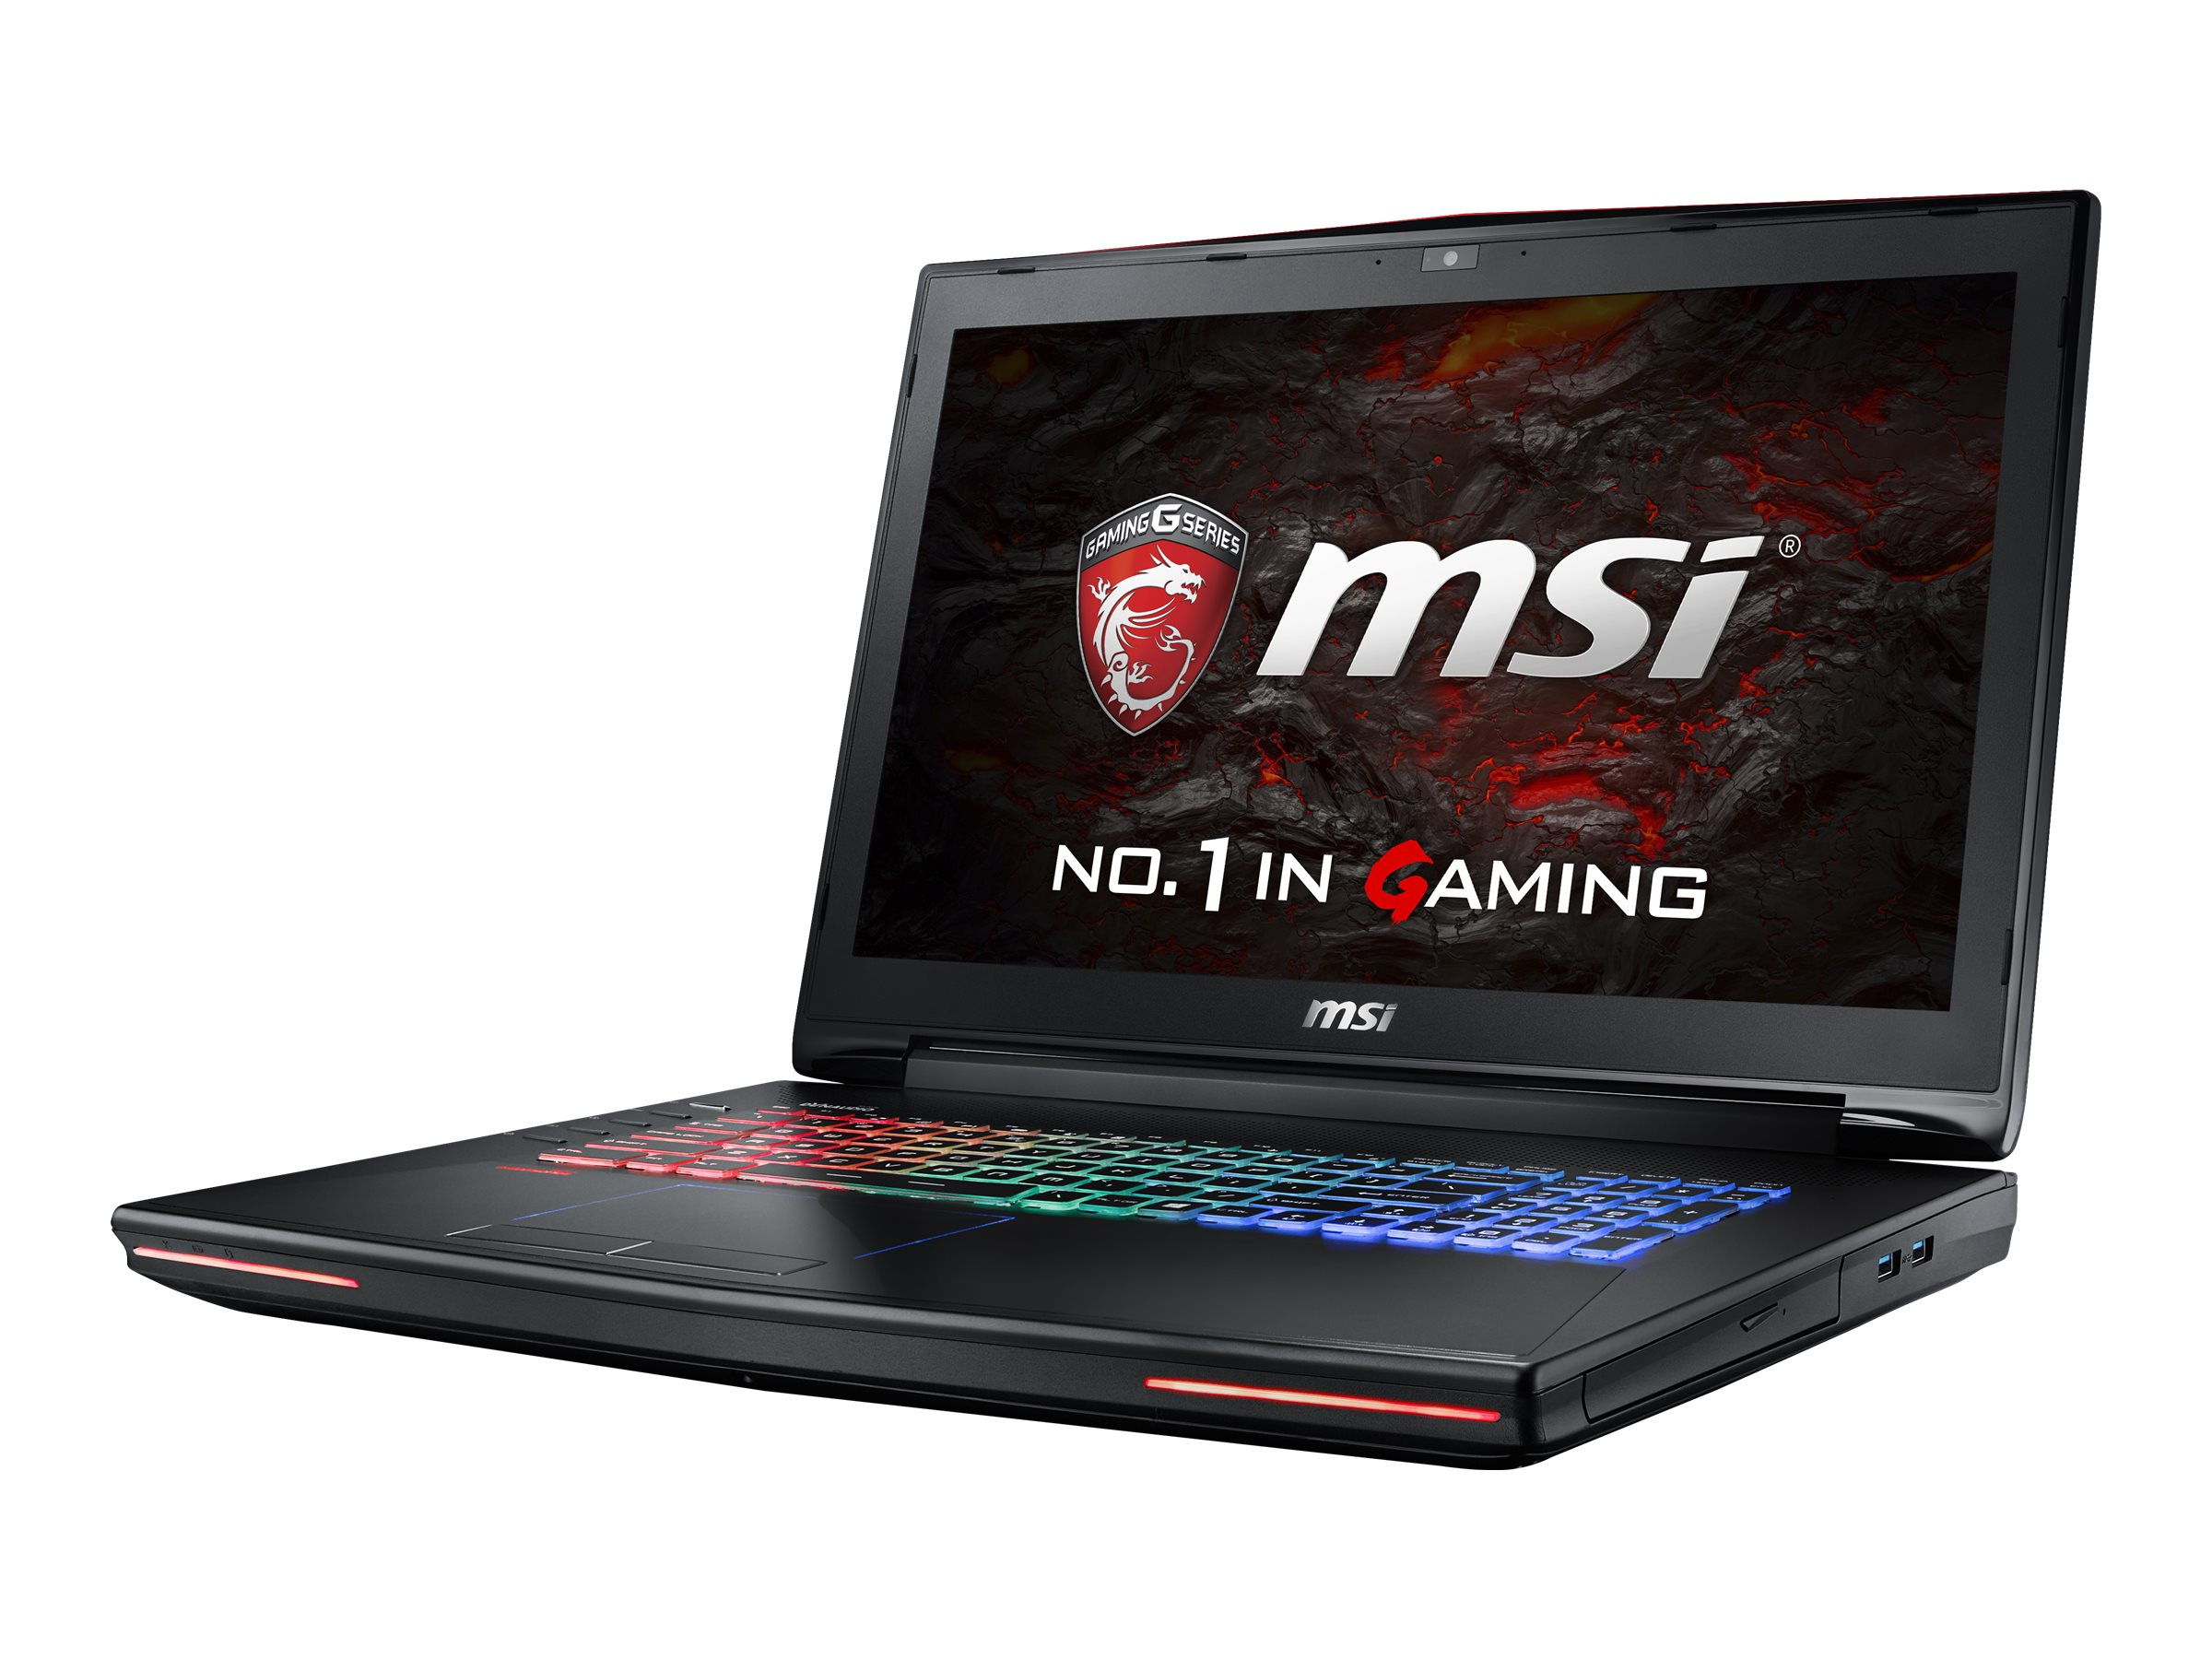 MSI Computer GT72VR286 Image 1